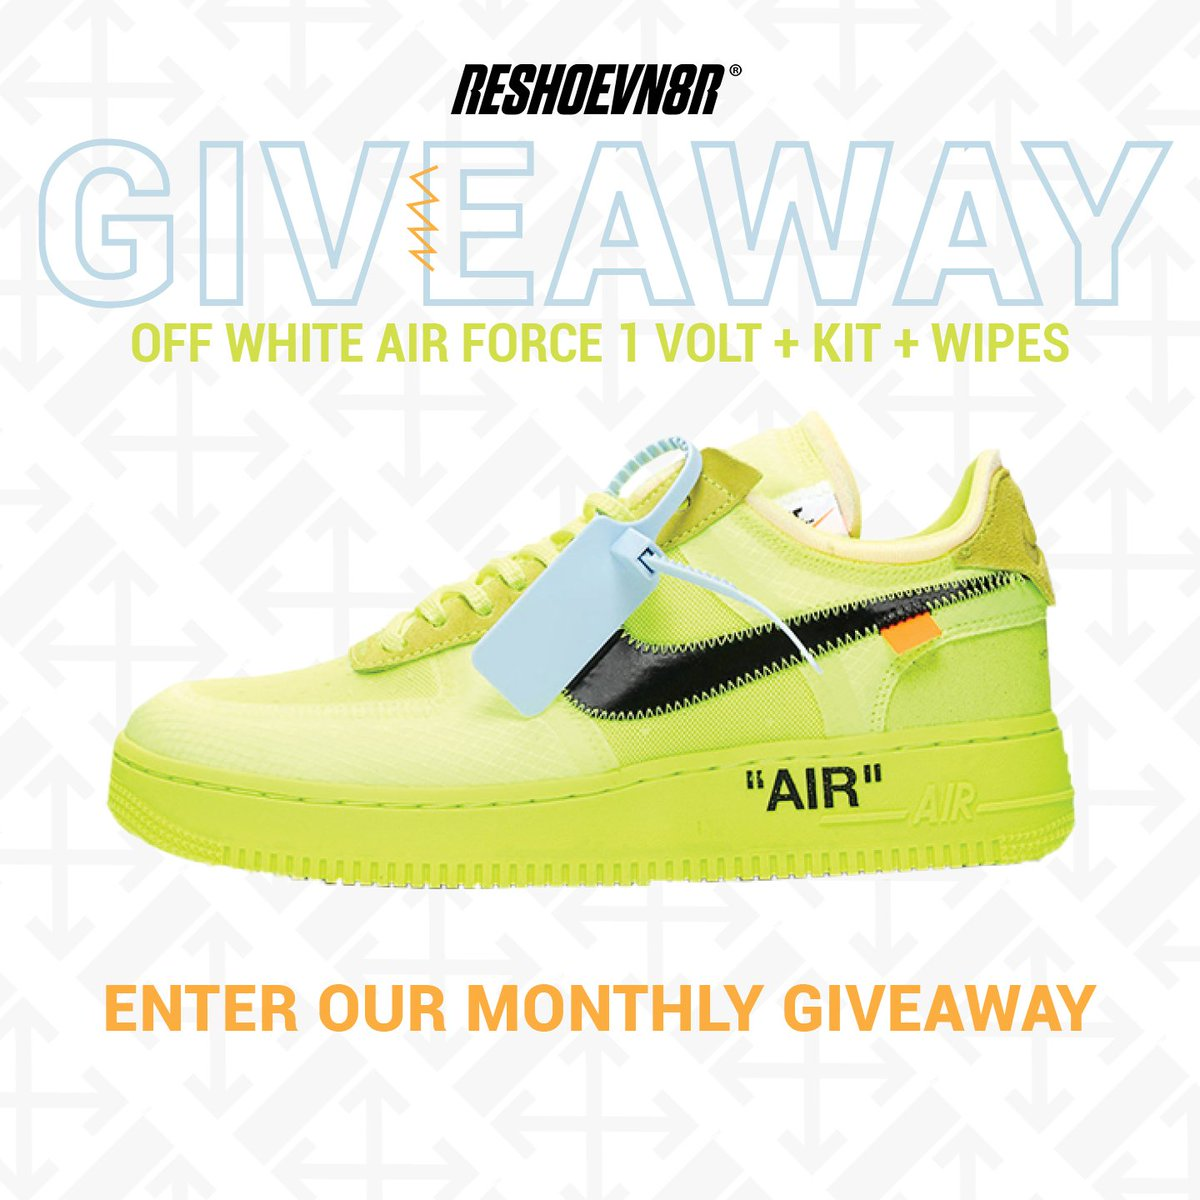 New month! New giveaway! In February we are giving away a pair of Off-White Air Force 1 Volts PLUS a 3 Brush Laundry System and a pack of wipes! You don't want to miss your chance to win this prize. To enter visit https://reshoevn8r.com/pages/giveaway and retweet this tweet for an extra entry!